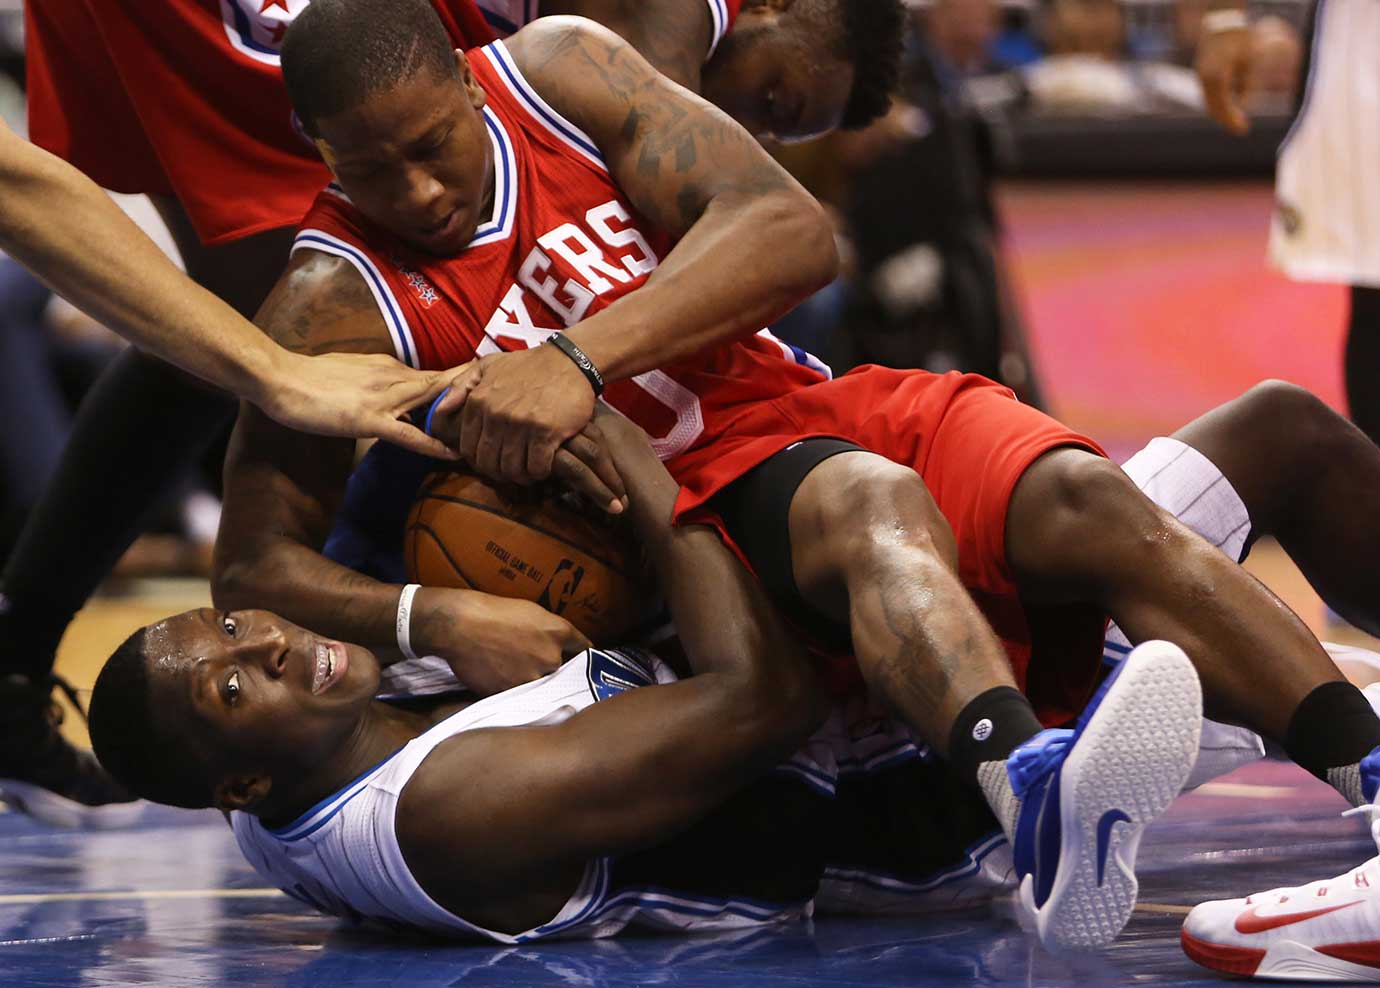 Orlando Magic guard Victor Oladipo fights for possession with Isaiah Canaan of Philadelphia.